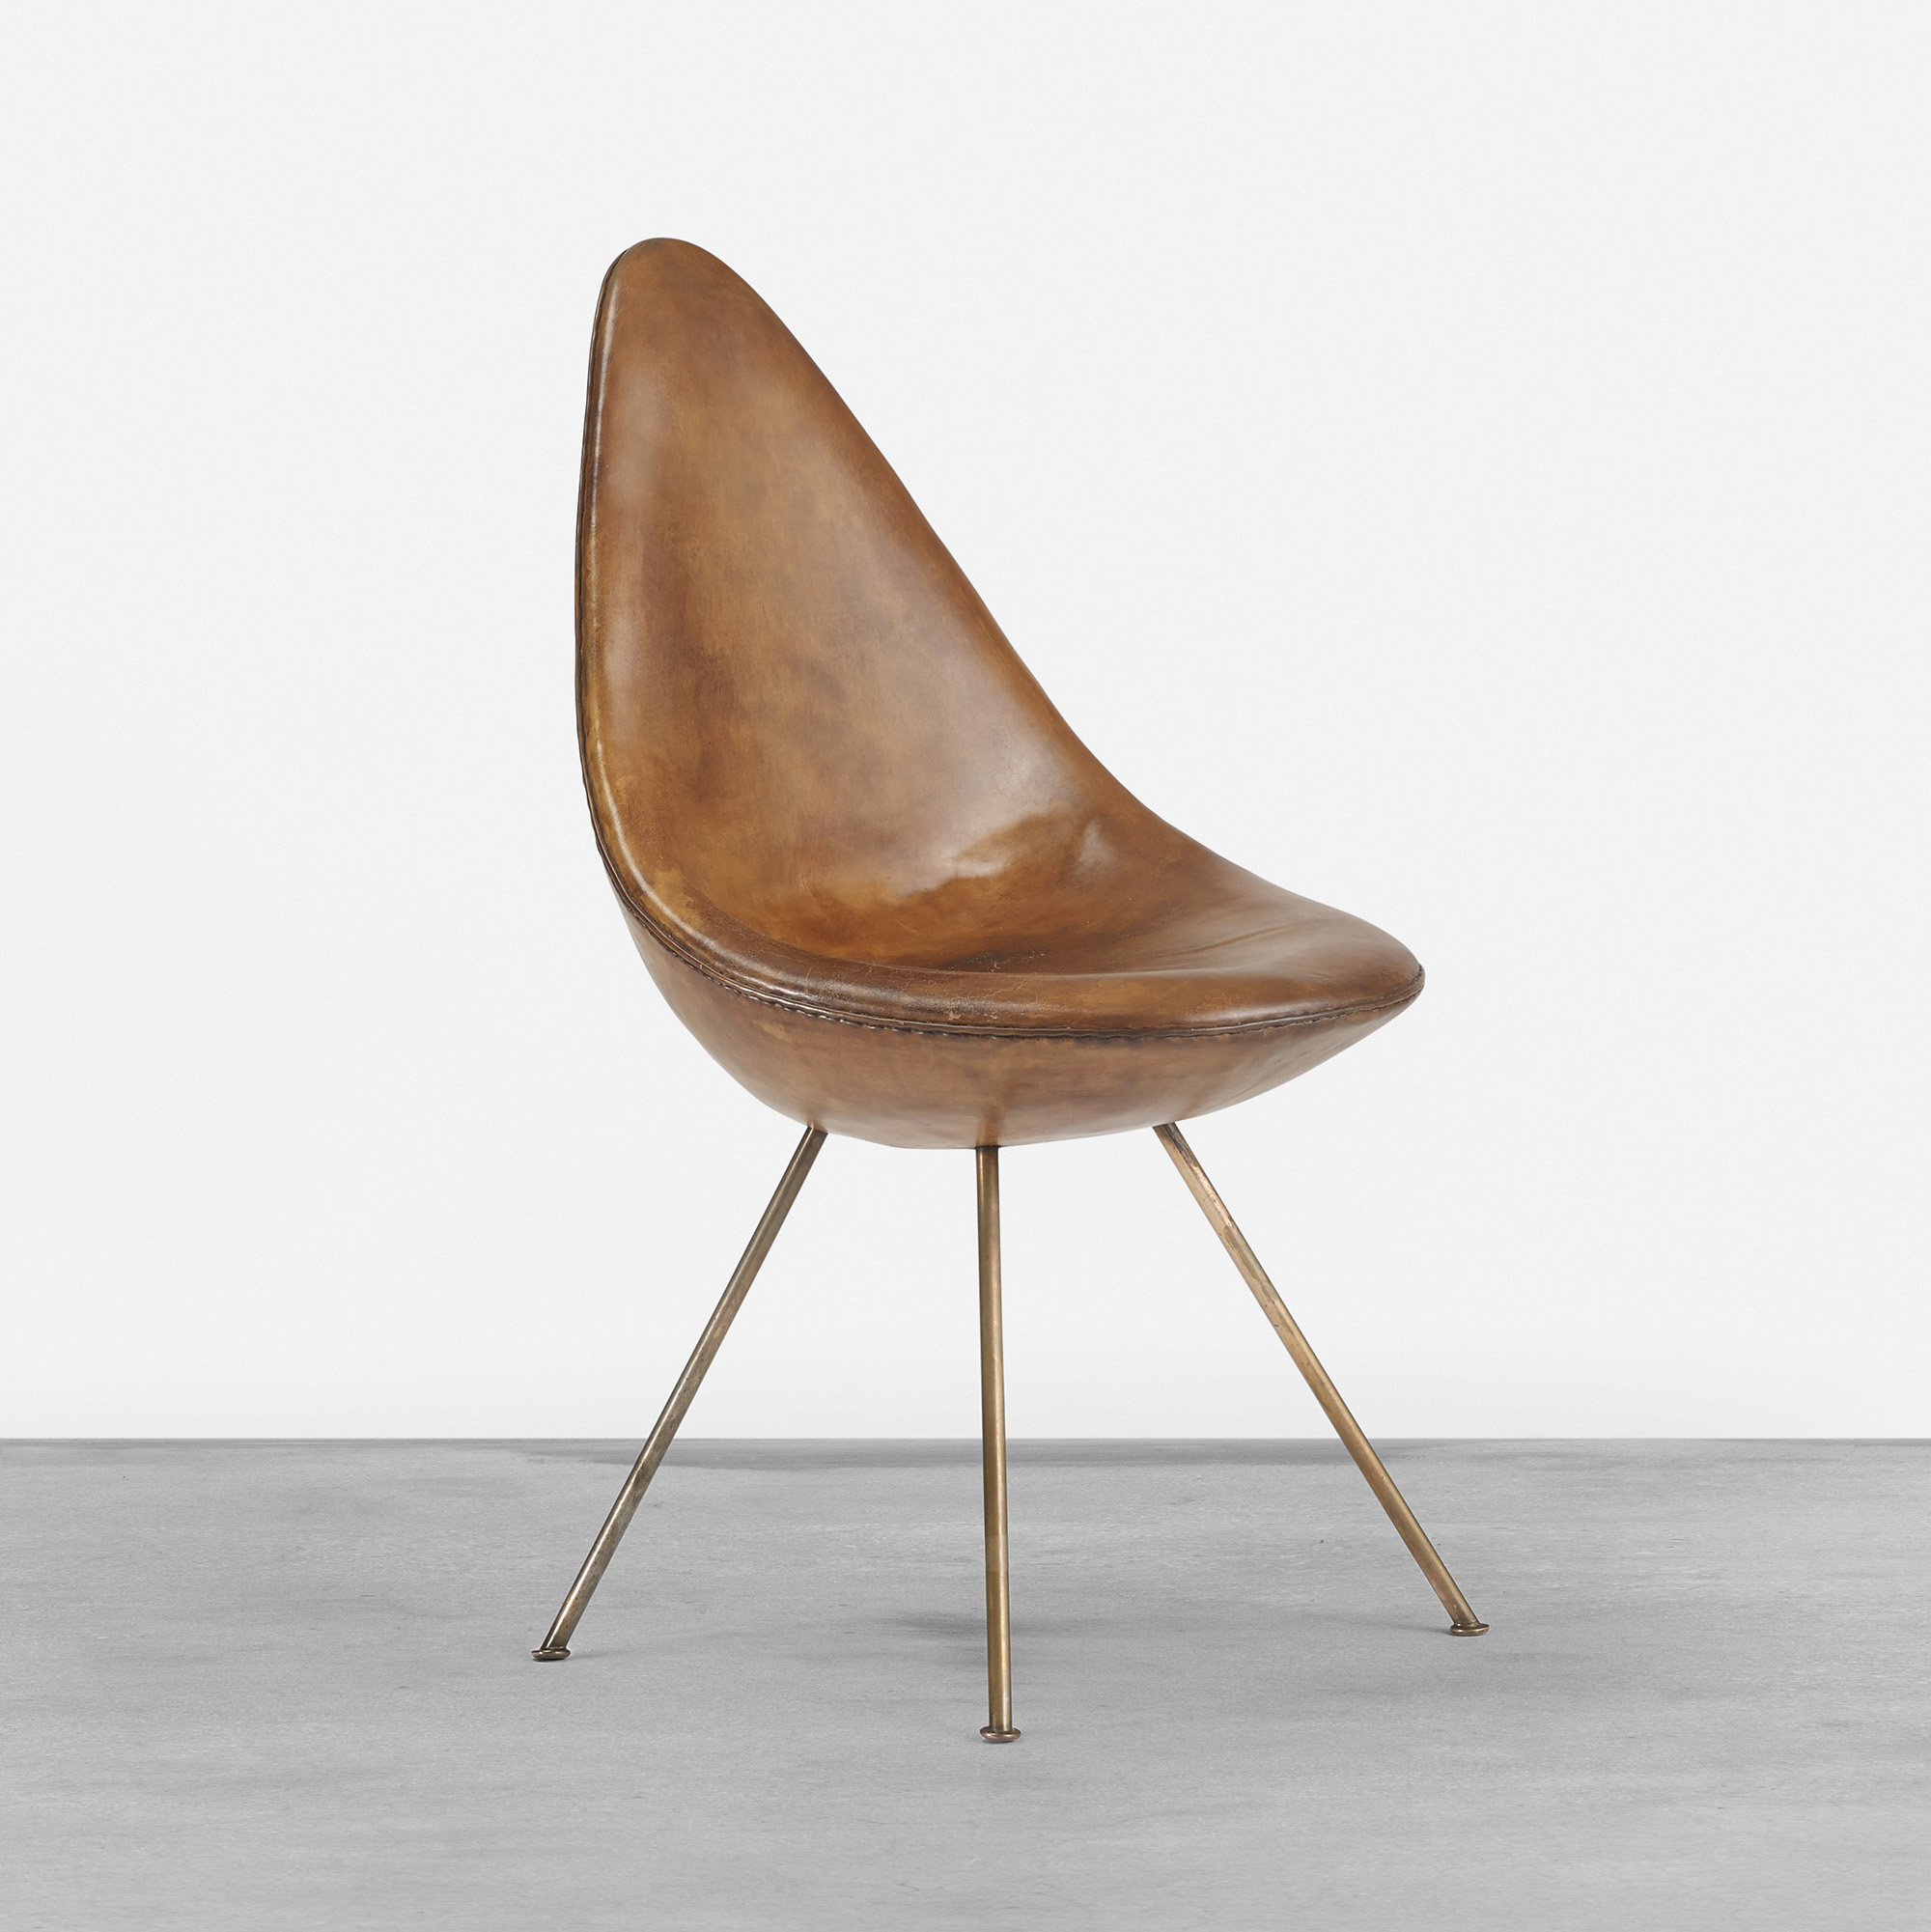 Arne jacobsen drop chair - 304 Arne Jacobsen Drop Chair From The Sas Royal Hotel 1 Of 4